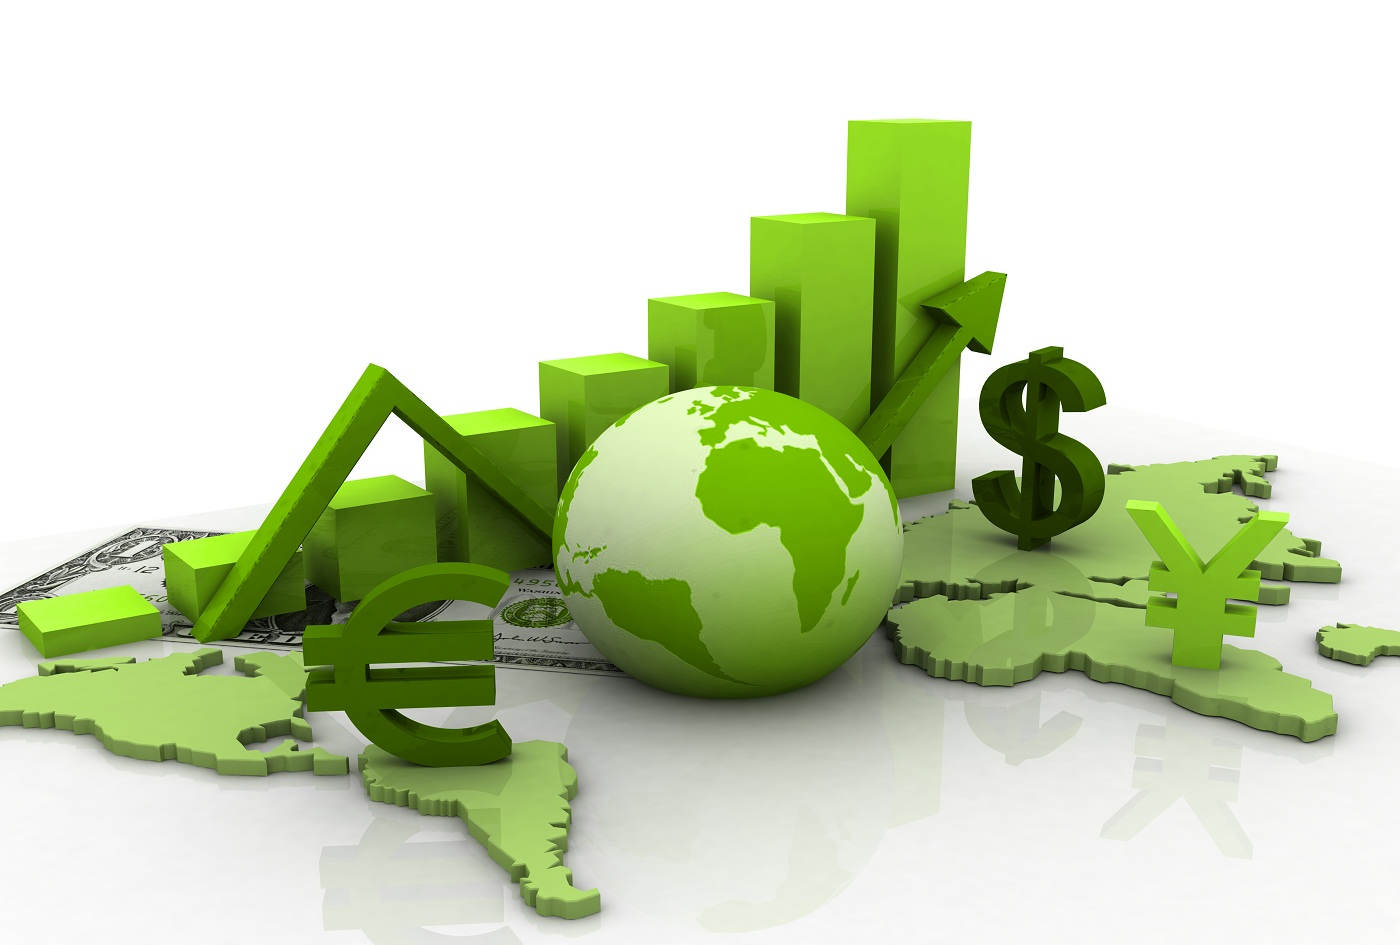 Copy_of_green_economy_graph_earth1.jpg